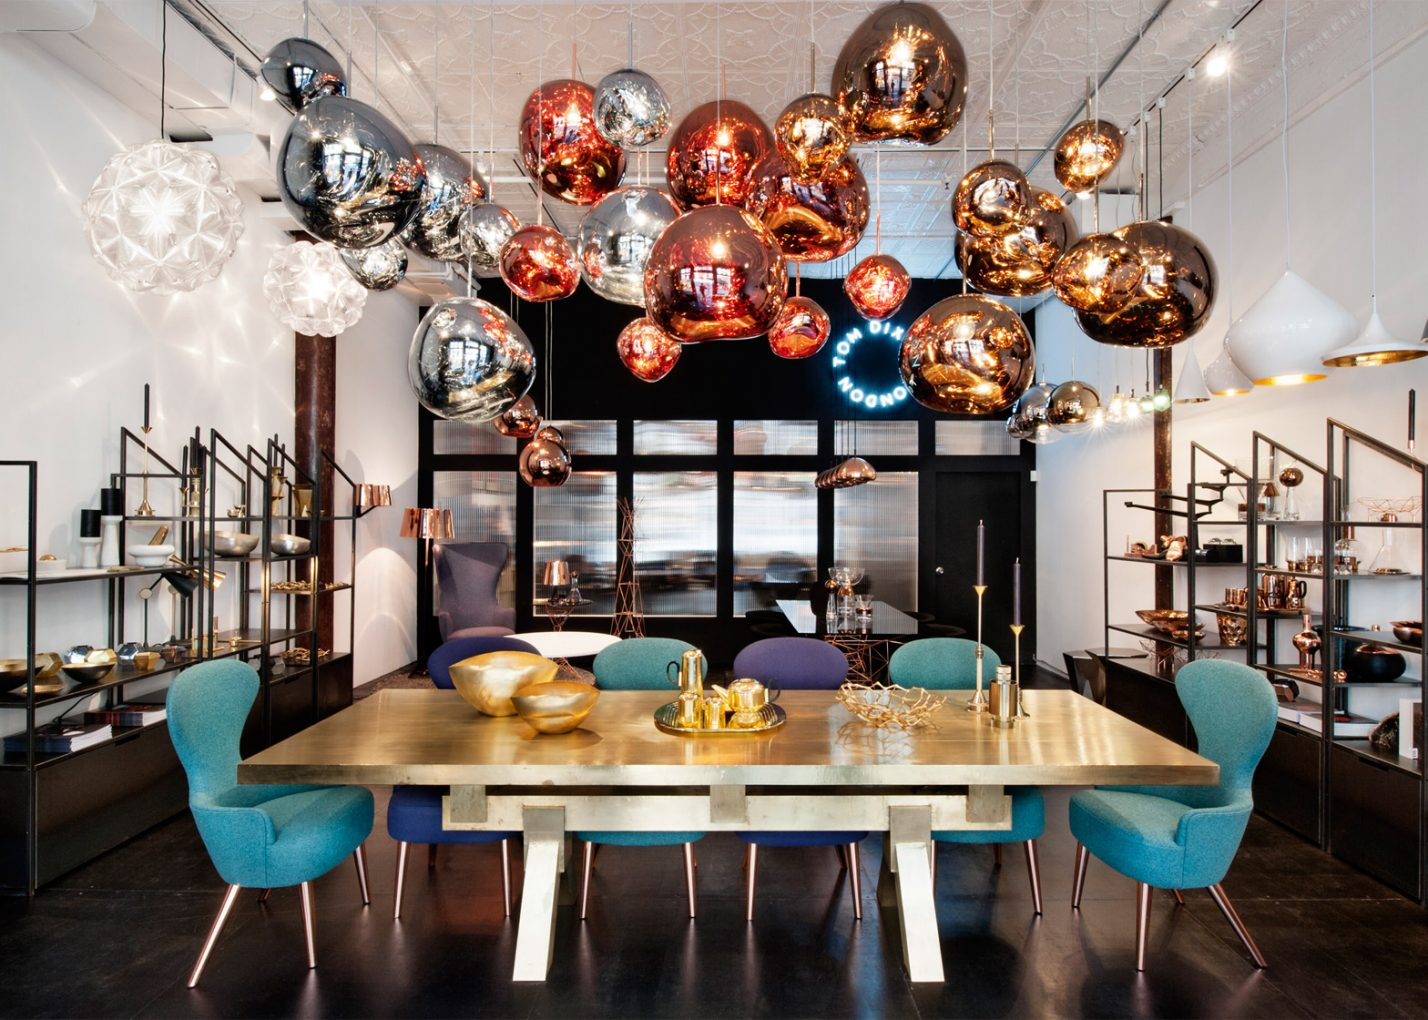 tom dixon store in new york city guide new york city guide NEW YORK CITY GUIDE tom dixon store